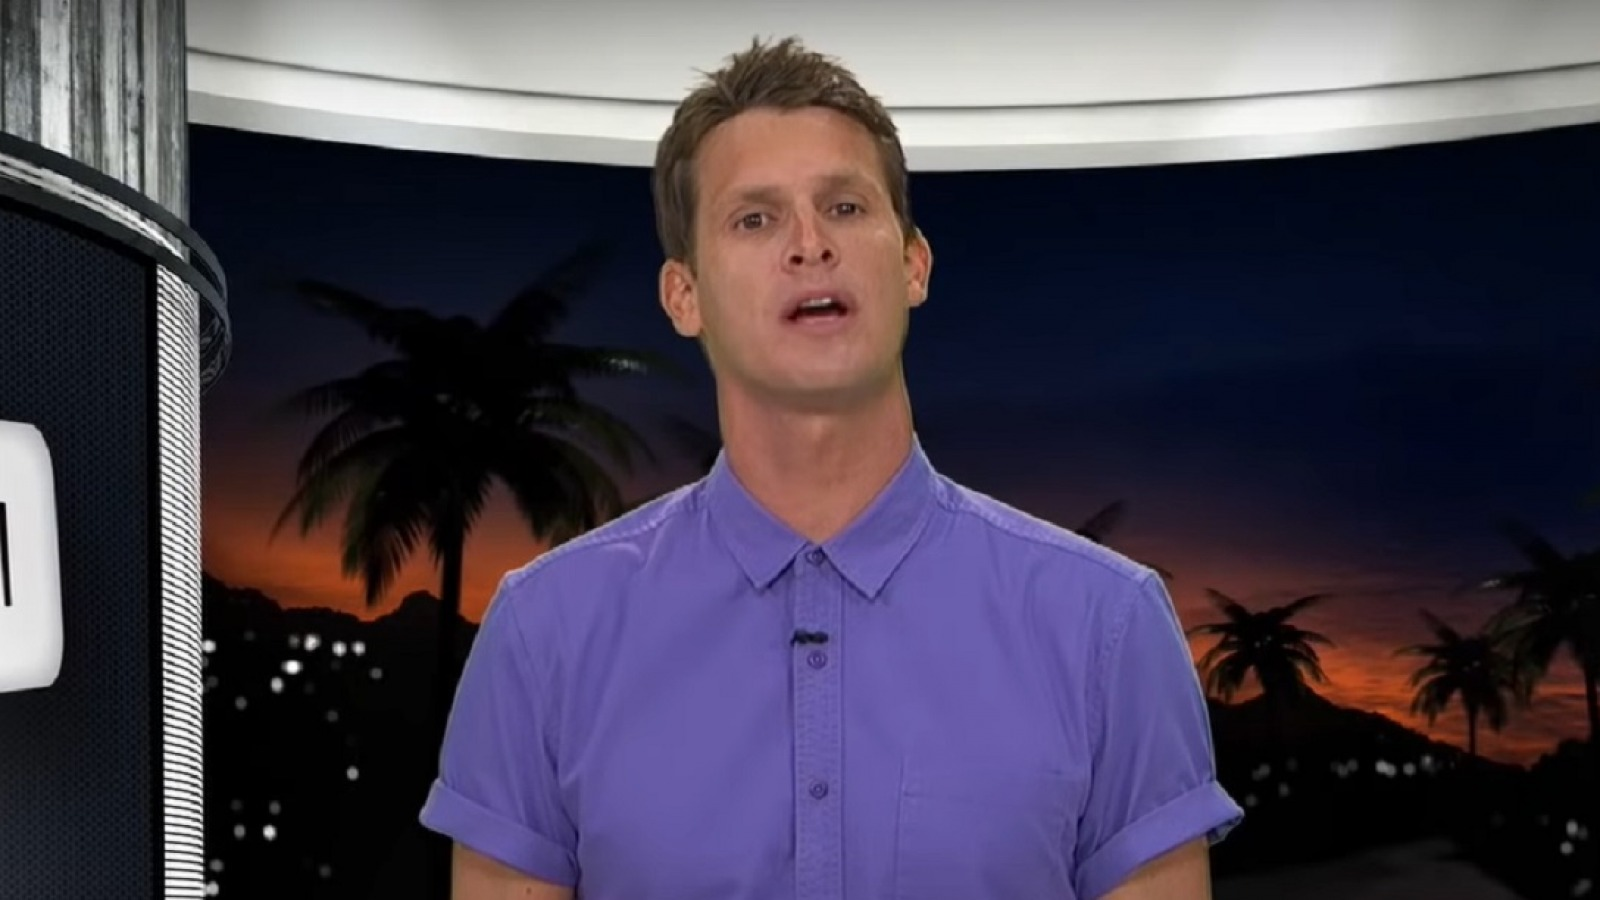 Celebs that can't stand Daniel Tosh